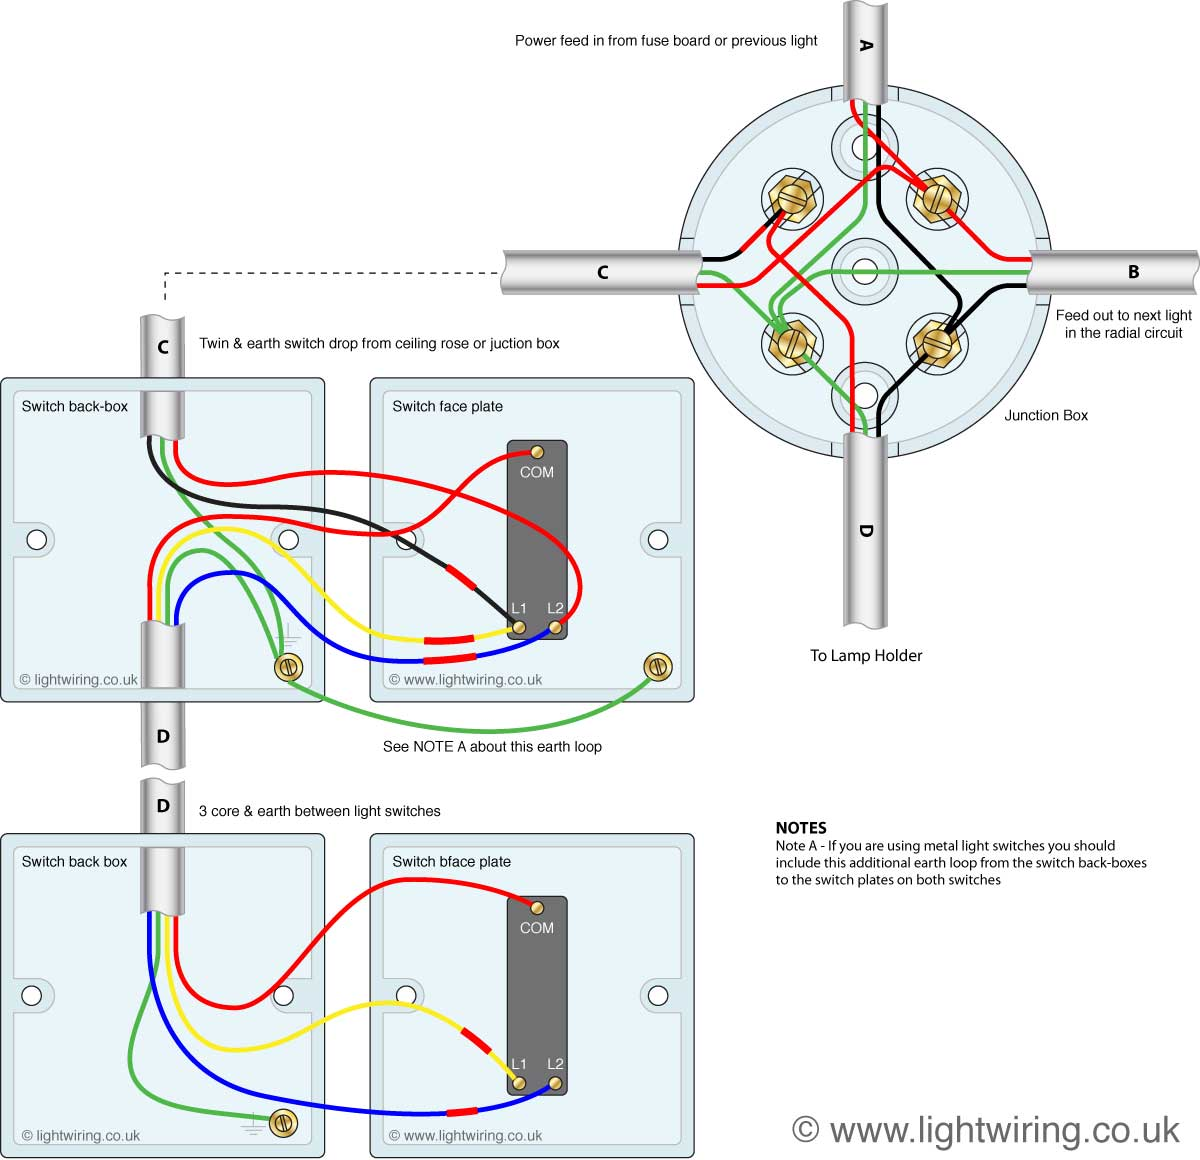 3 way switching from junction box 2 way switch (3 wire system, old cable colours) light wiring 2 light switch wiring diagram at creativeand.co